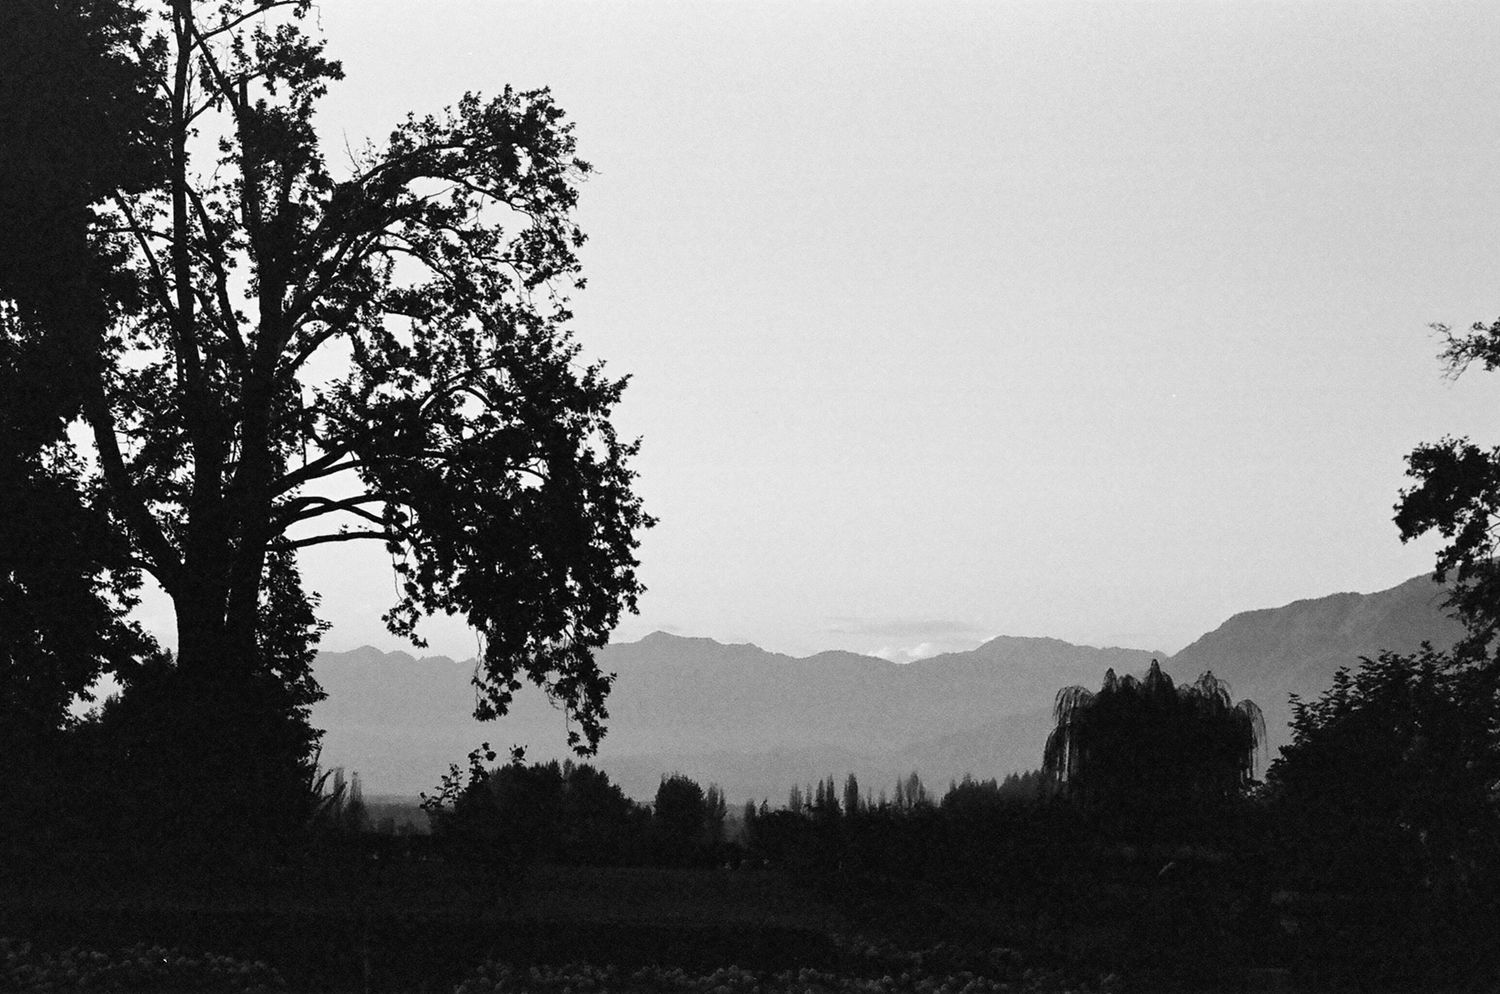 Tree and the Mountain, Srinagar 2015   Edition 1 of 2